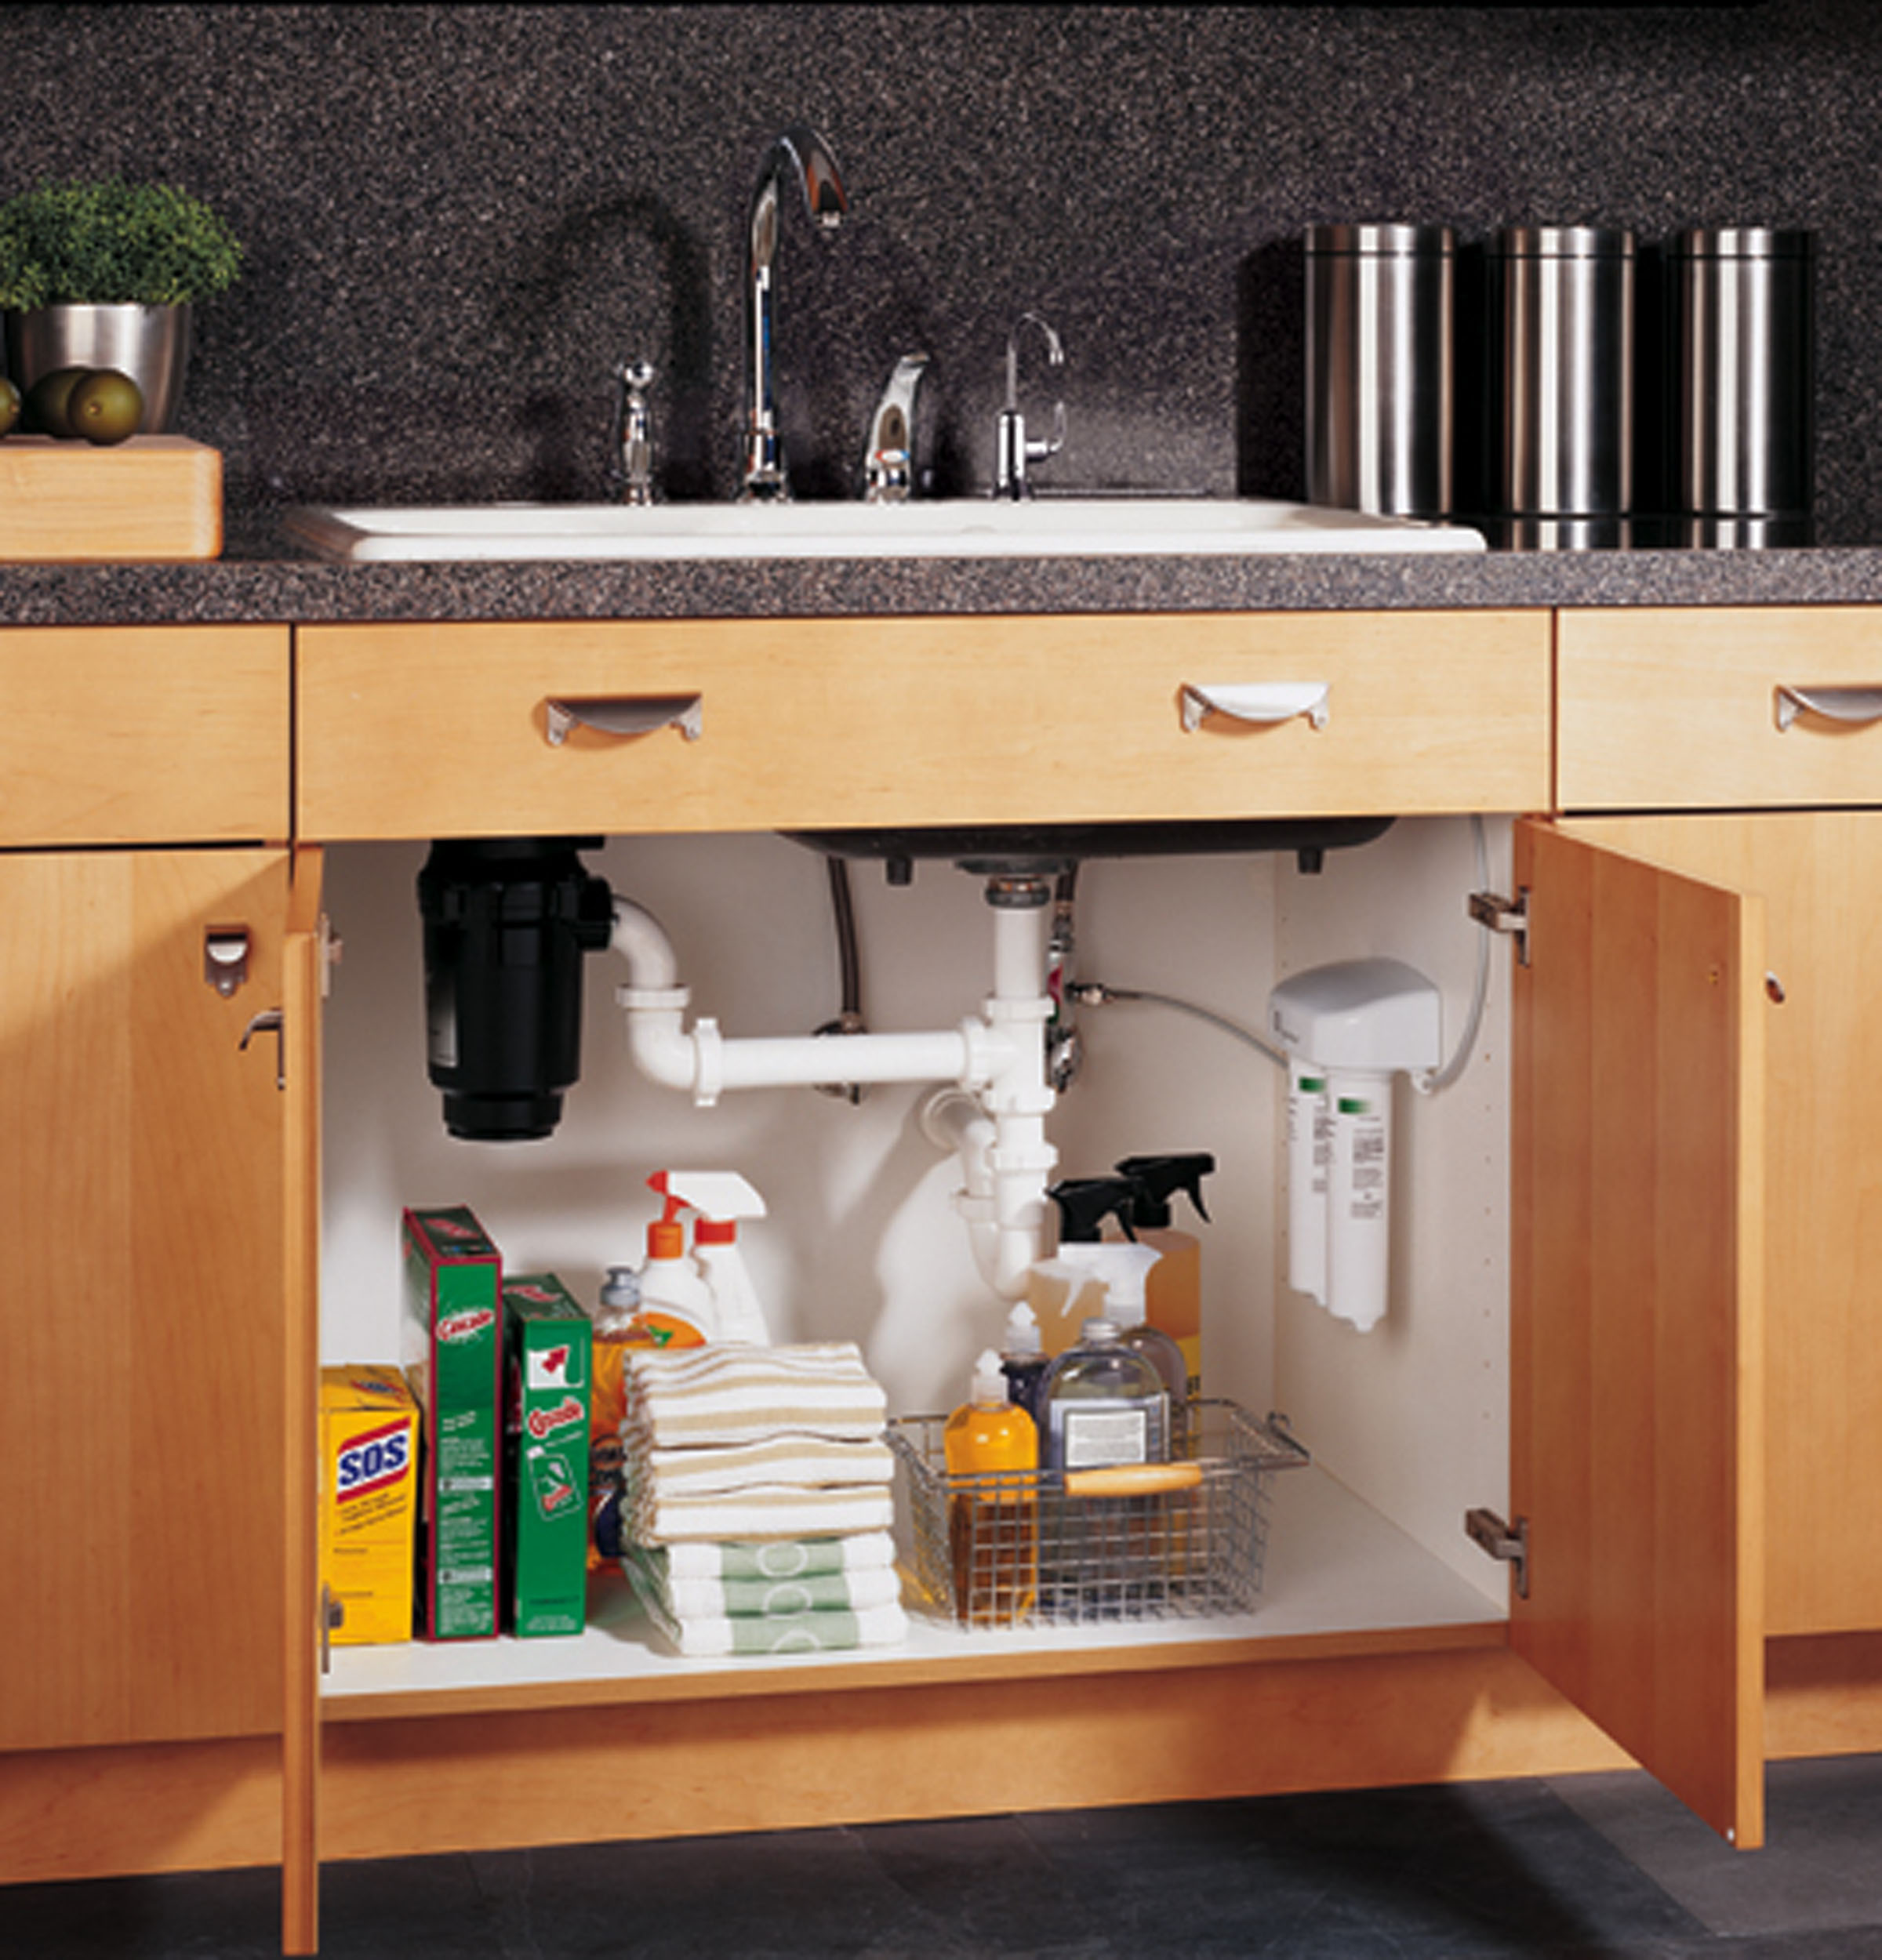 uce undersink rettinthewaterfilterstoreuk stage and countertop the dispensertyent filter tap ionizer filtration system turbo with dispensing water products rettin